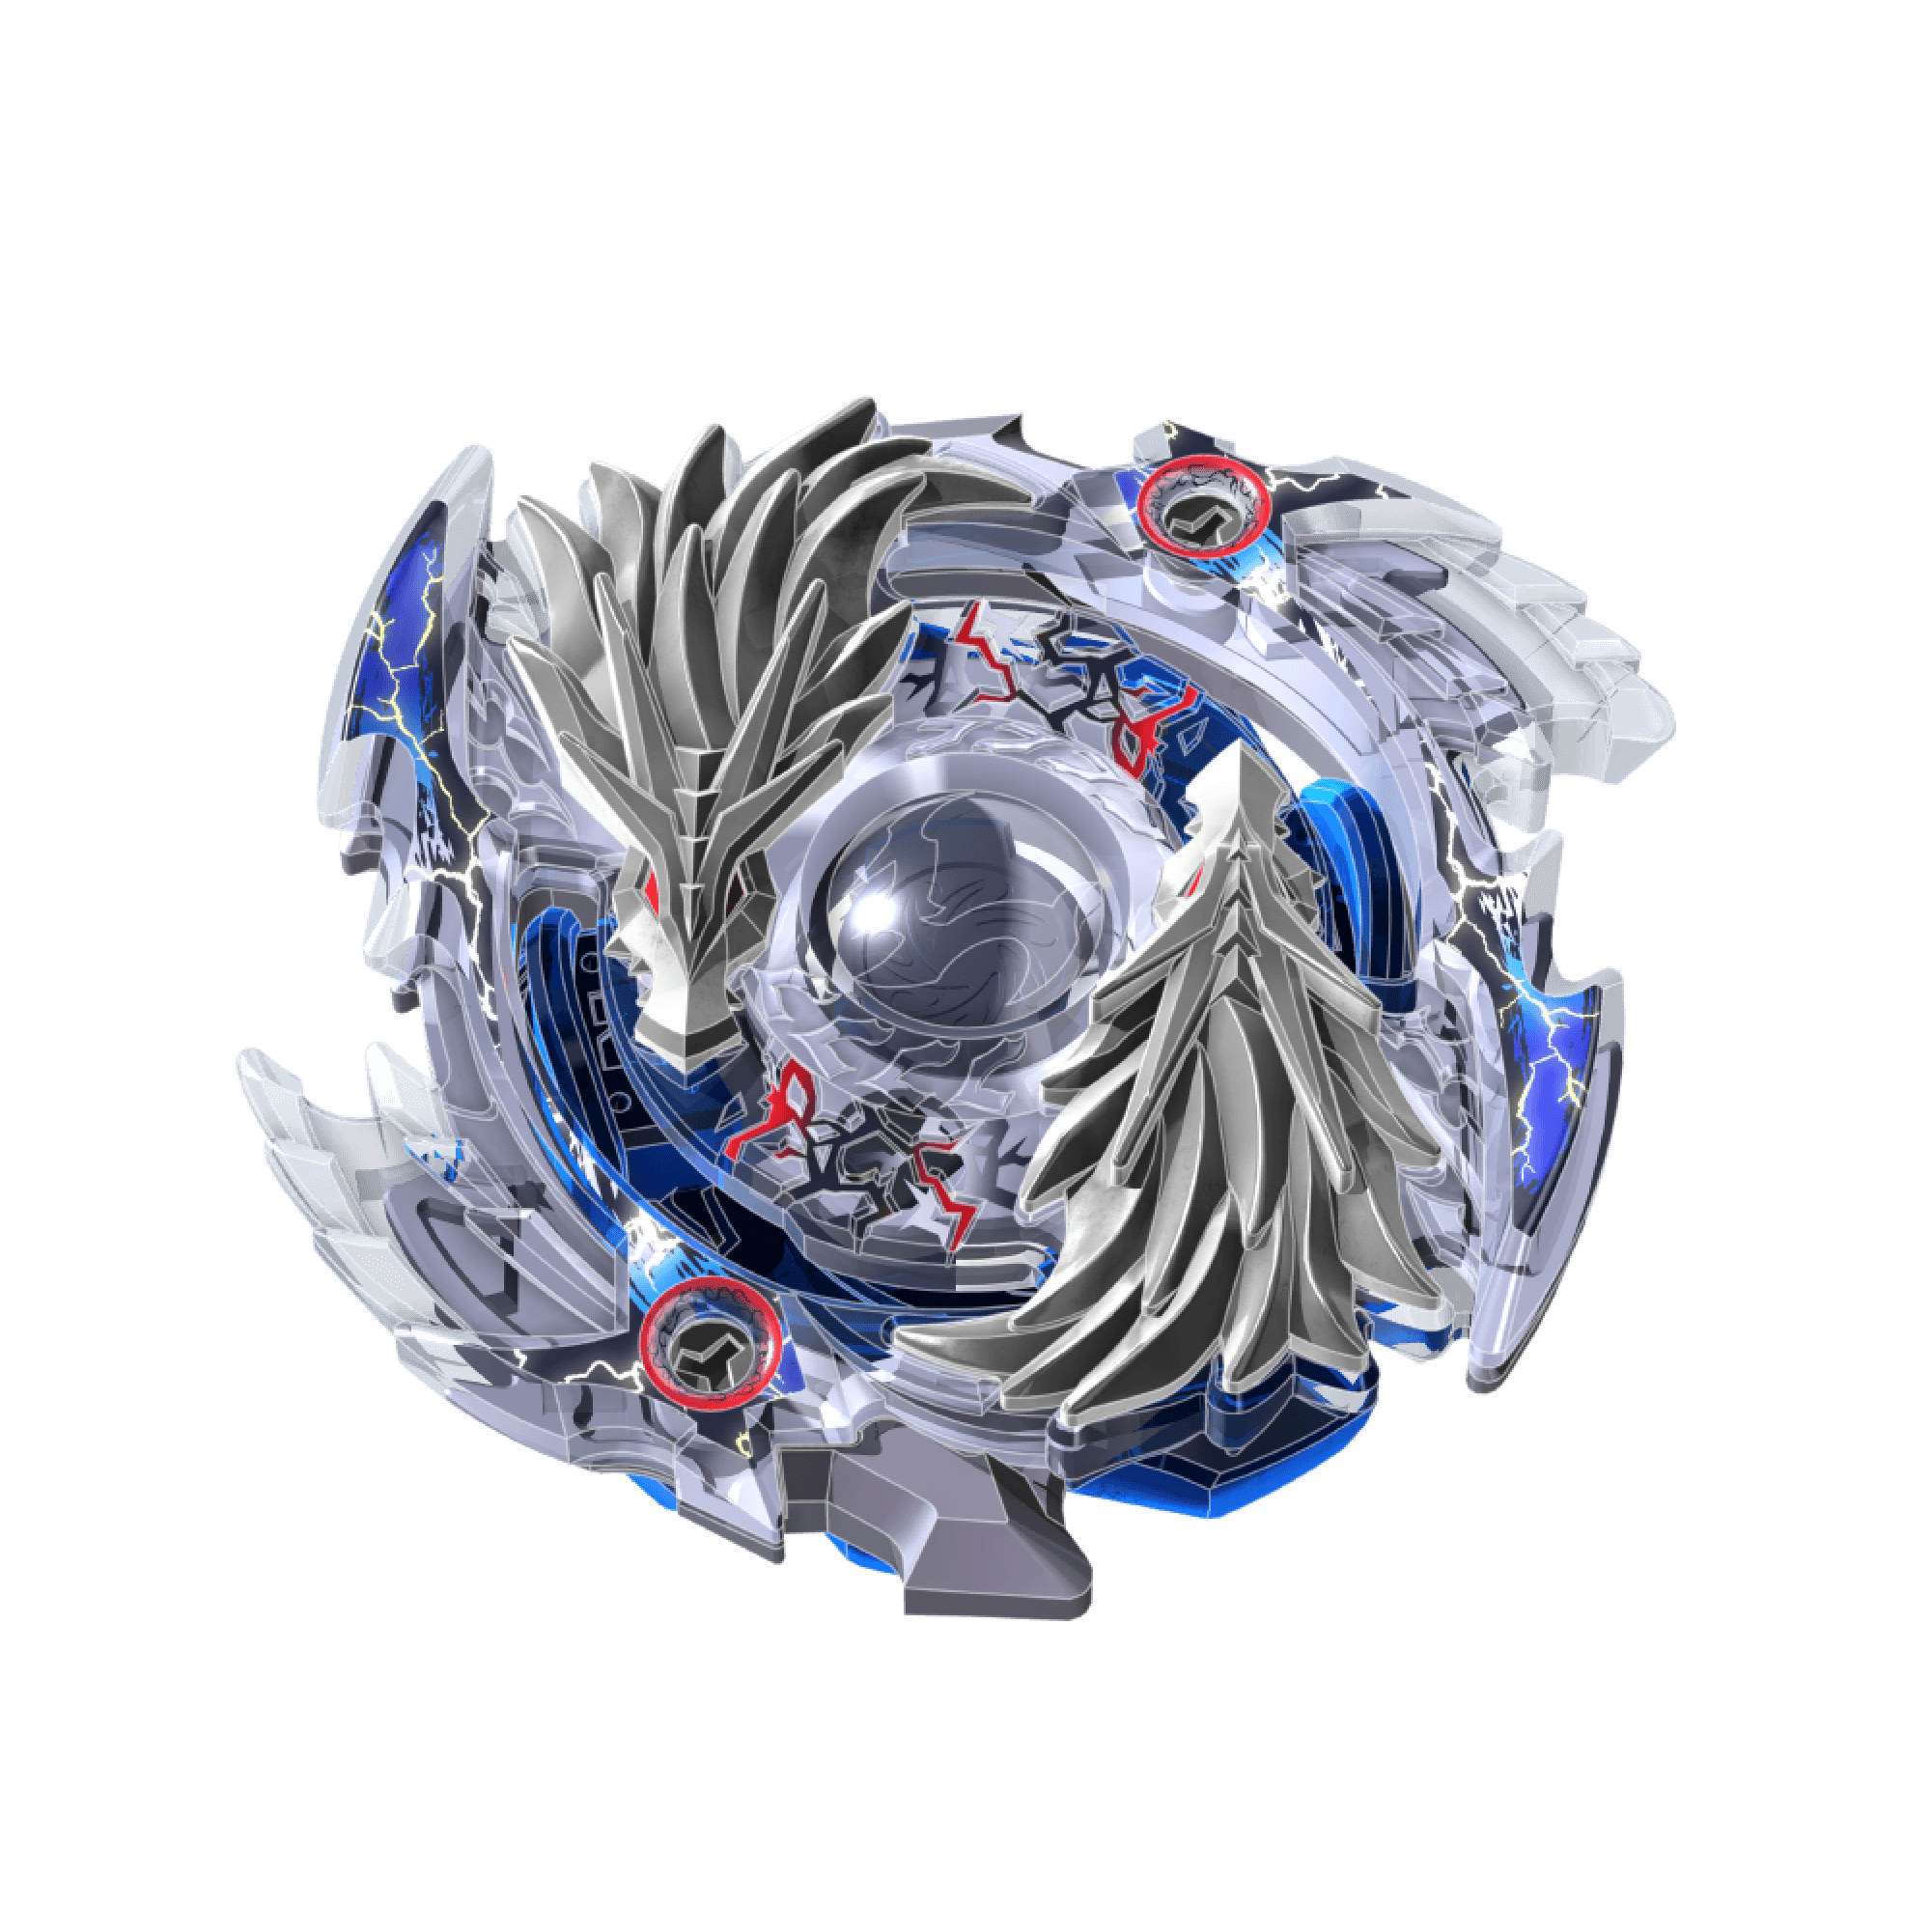 Lui Shirosagi Le Site Officiel De Beyblade Burst France